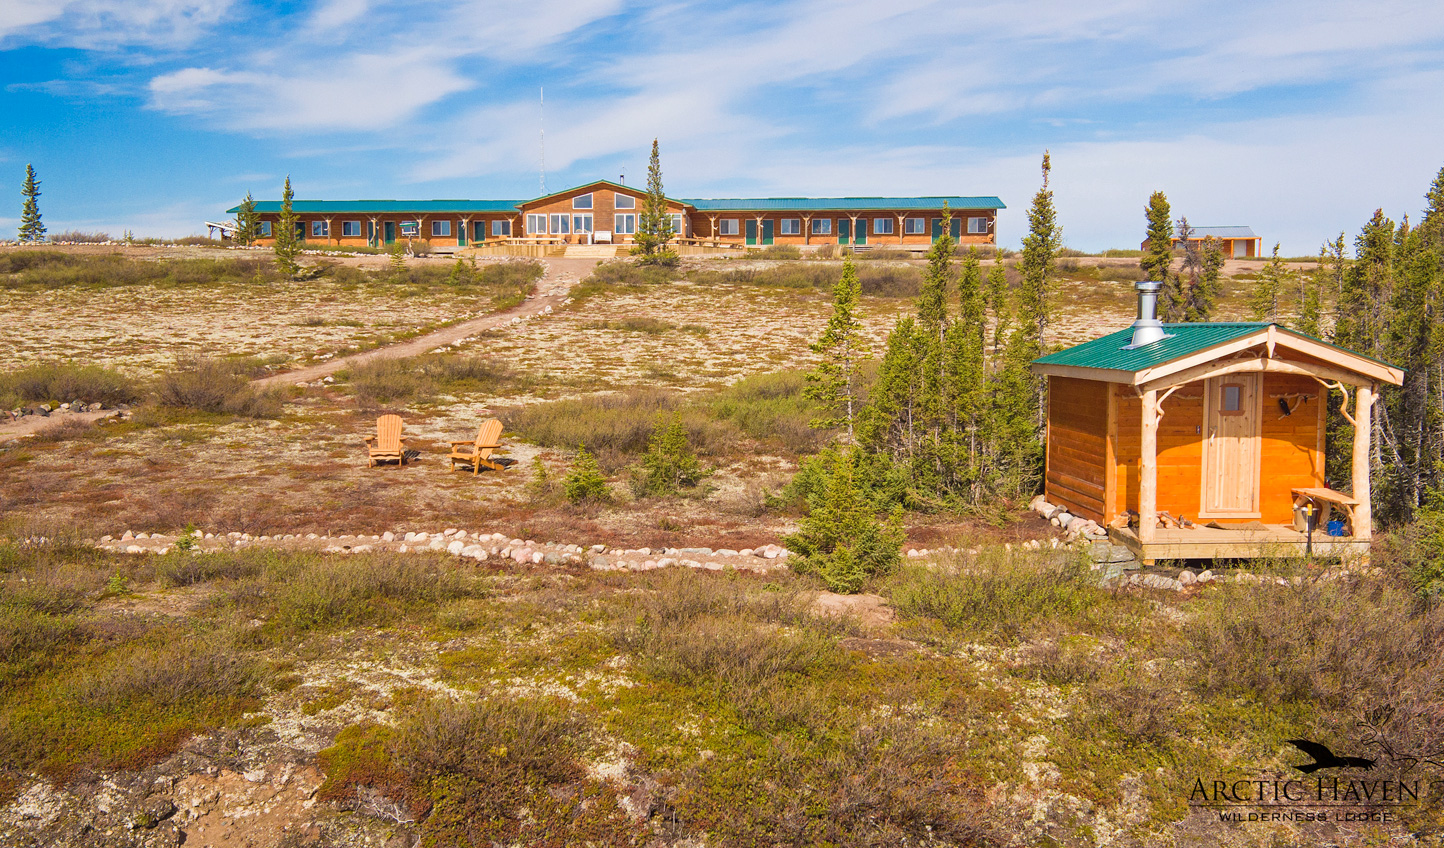 Lodges that tread lightly yet without compromise on comfort